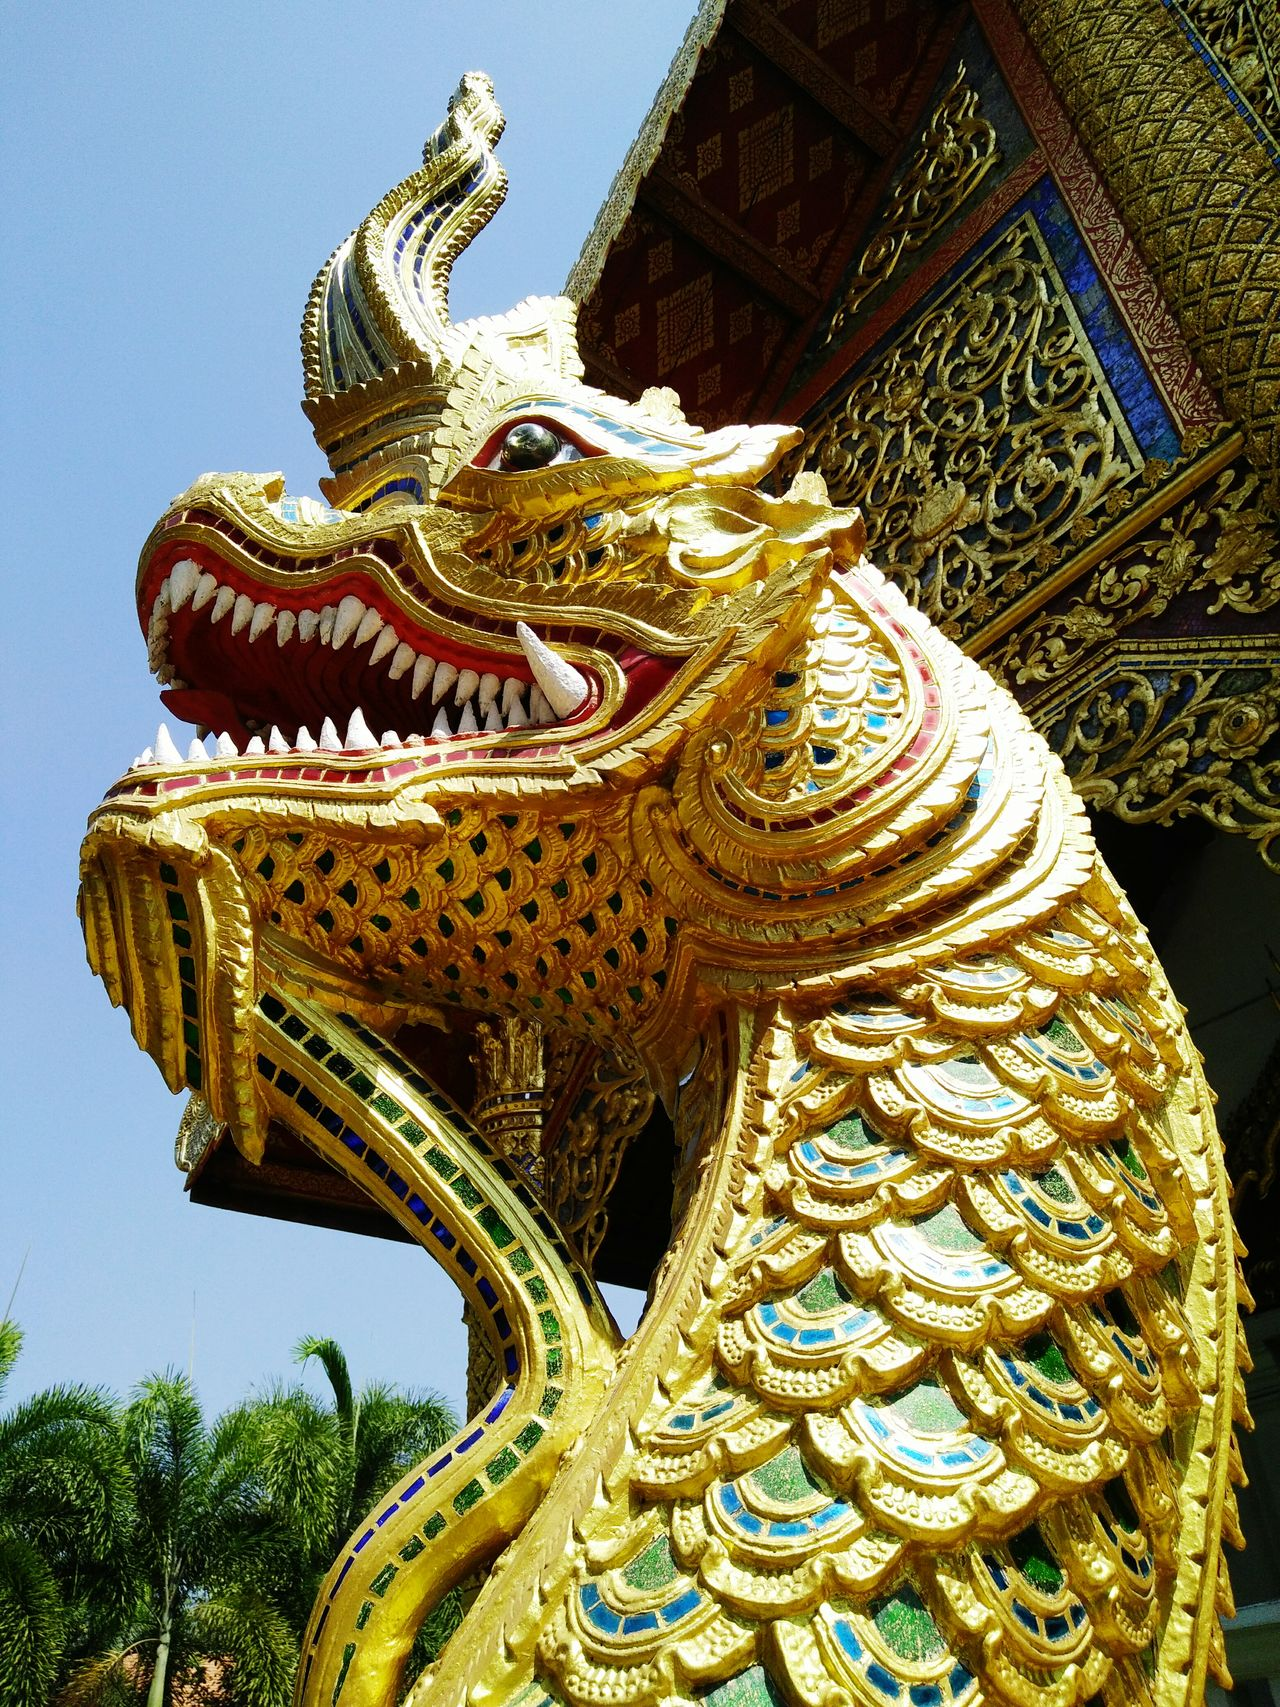 Gold Statue Craft Sculpture No People Architecture Outdoors Day Chinese Dragon Naga Decorative Temple Thailand religion architecture arch Asia style